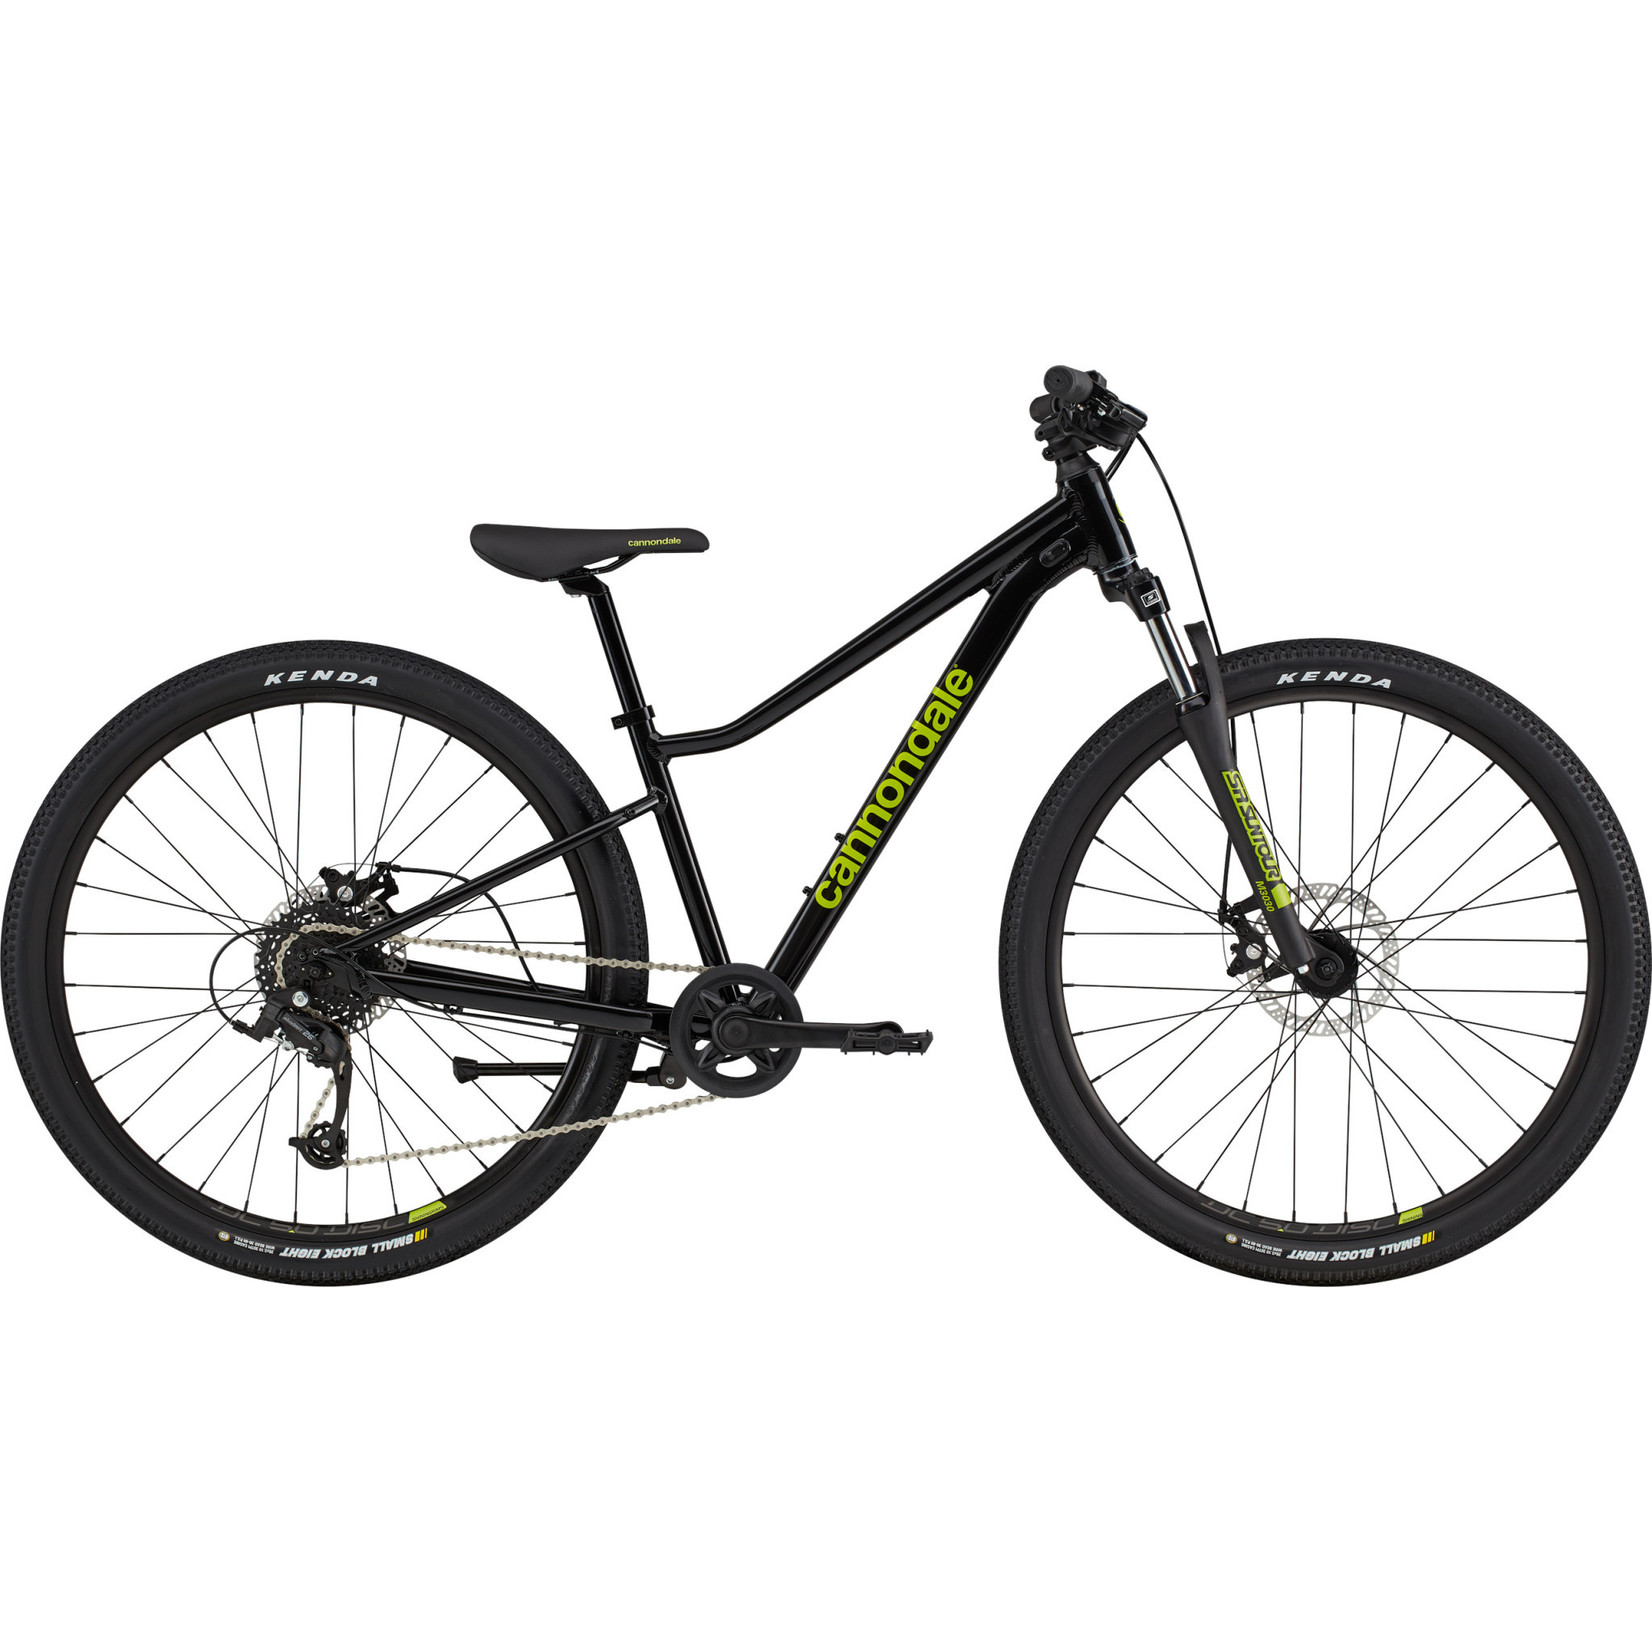 Cannondale 2021 Cannondale Trail 26 Bleack Pearl